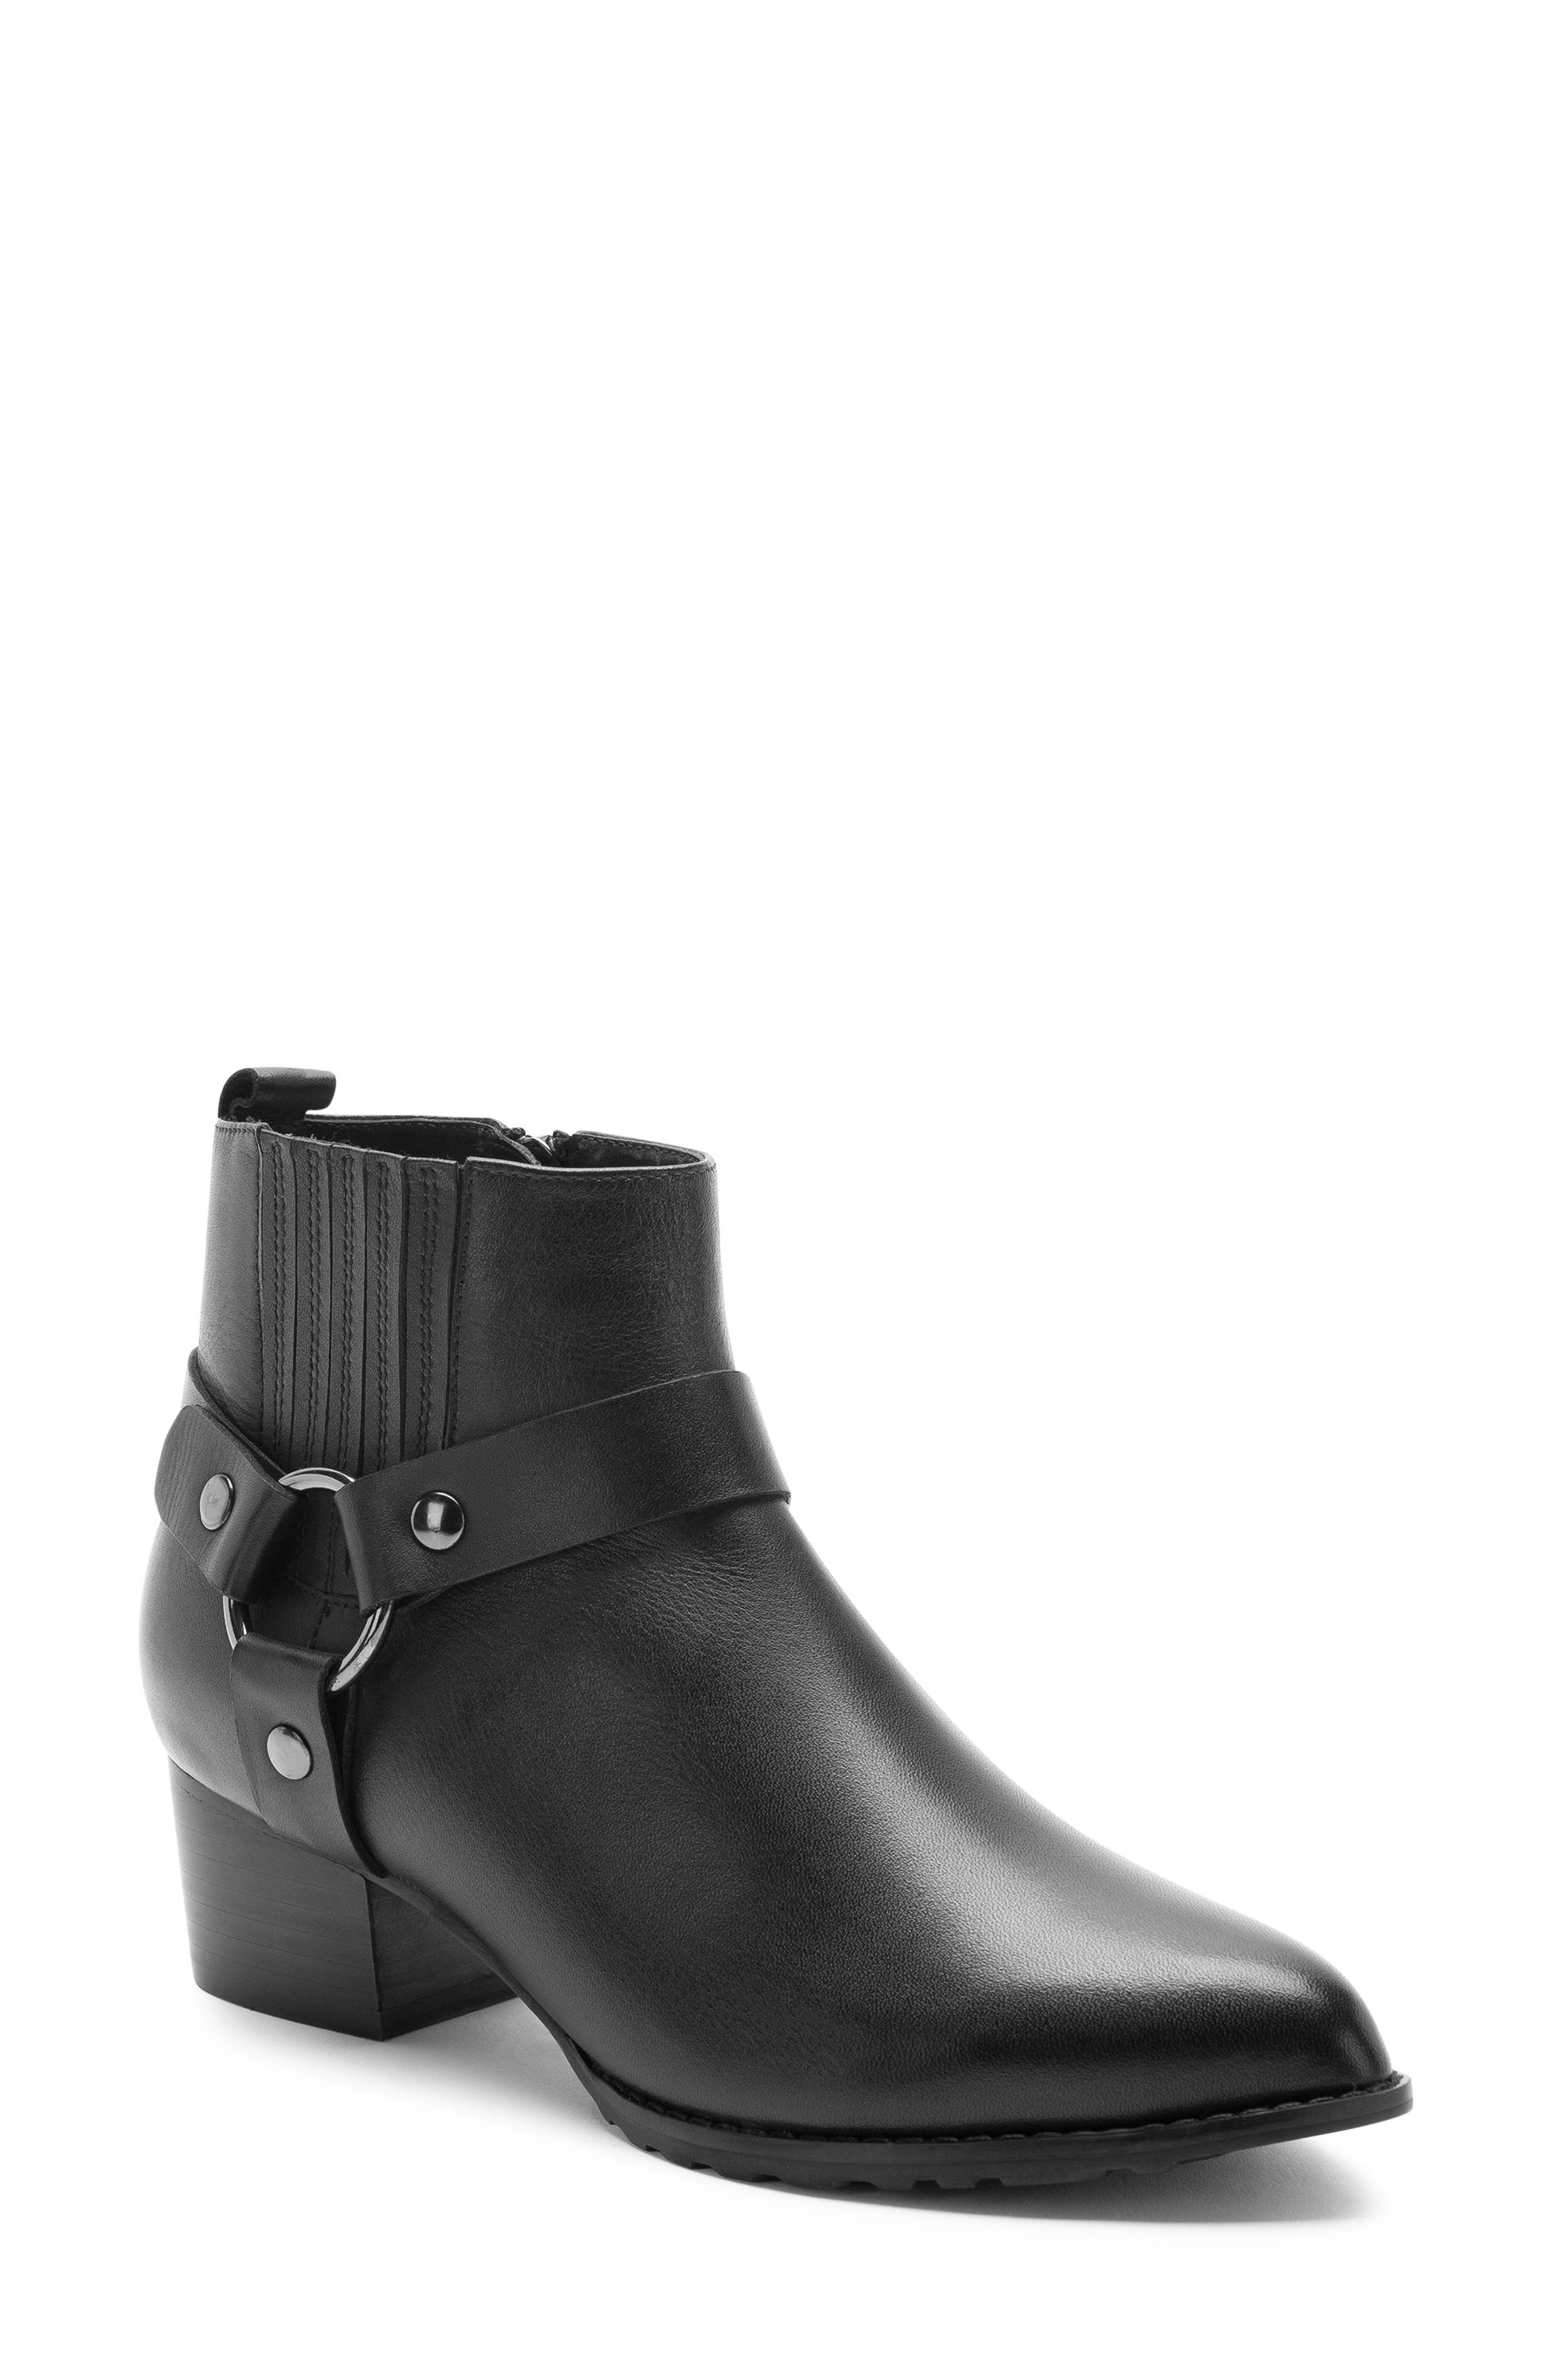 Tasha Waterproof Bootie,                         Main,                         color, BLACK LEATHER